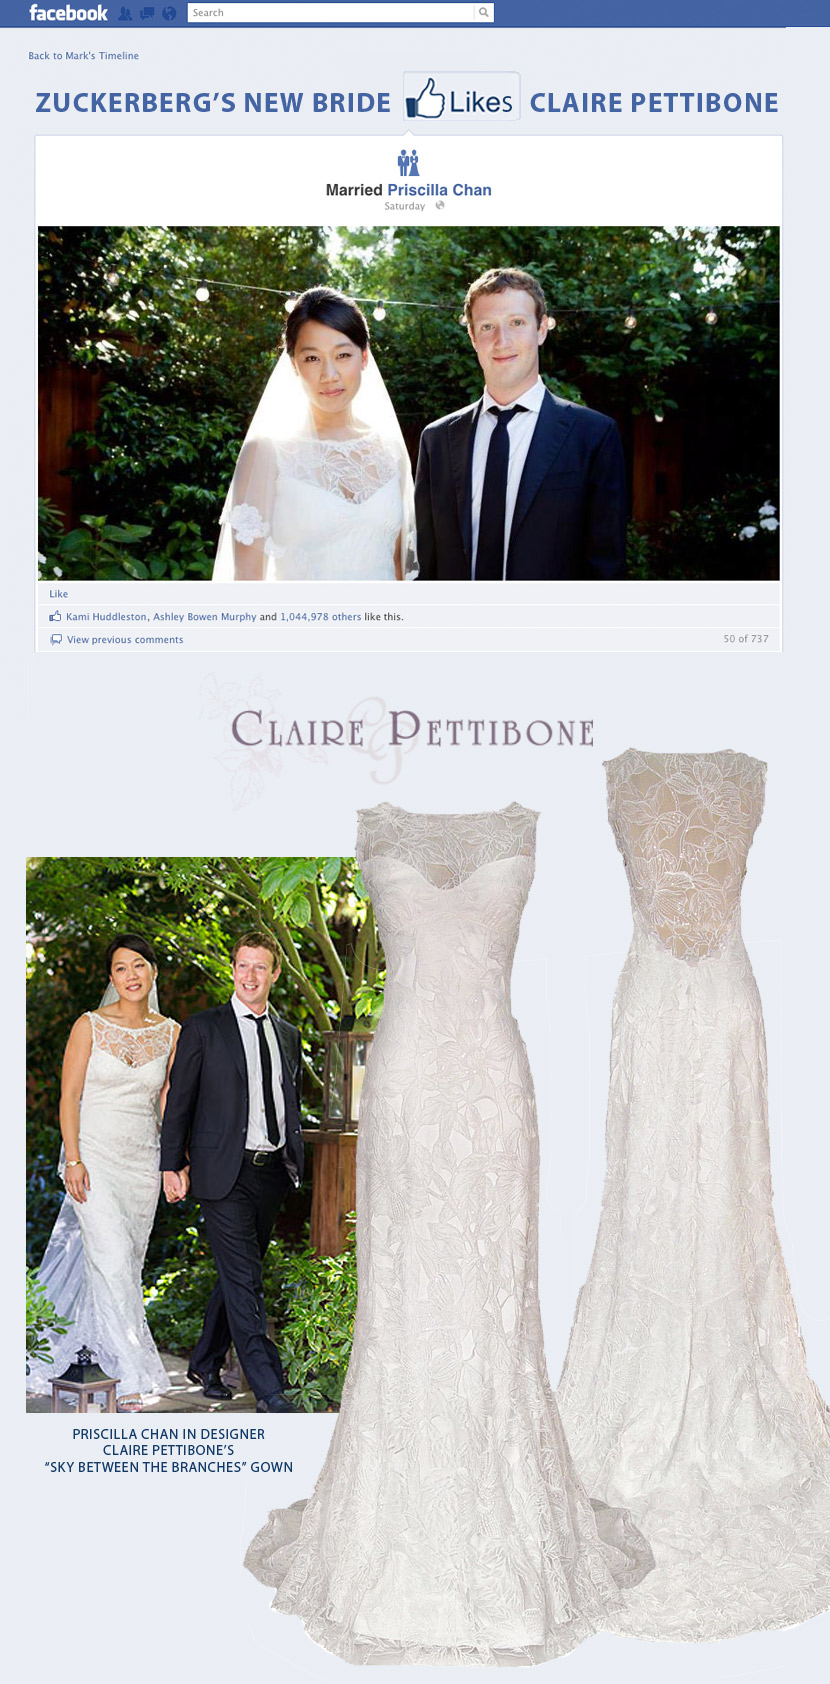 Mark Zuckerberg's new Bride Priscilla Chan wears Claire Pettibone Wedding Gown